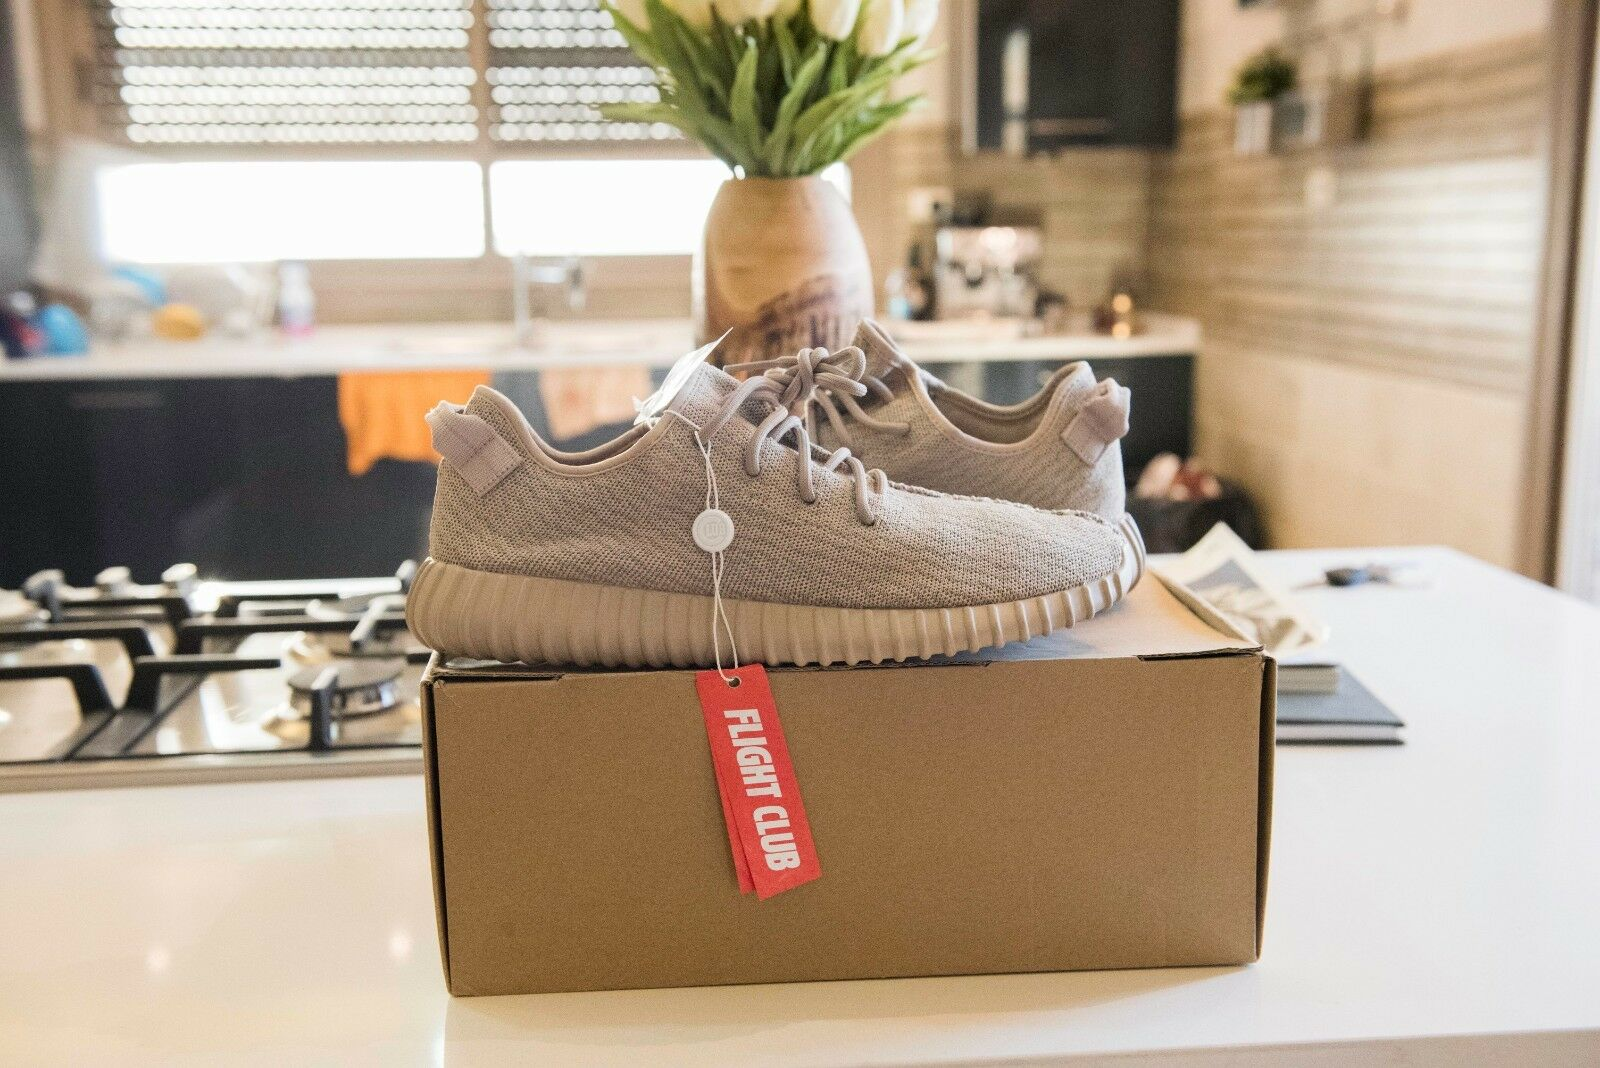 ADIDAS YEEZY BOOST 350  OXFORD TAN   Authentic 100% int shipping size 12.5